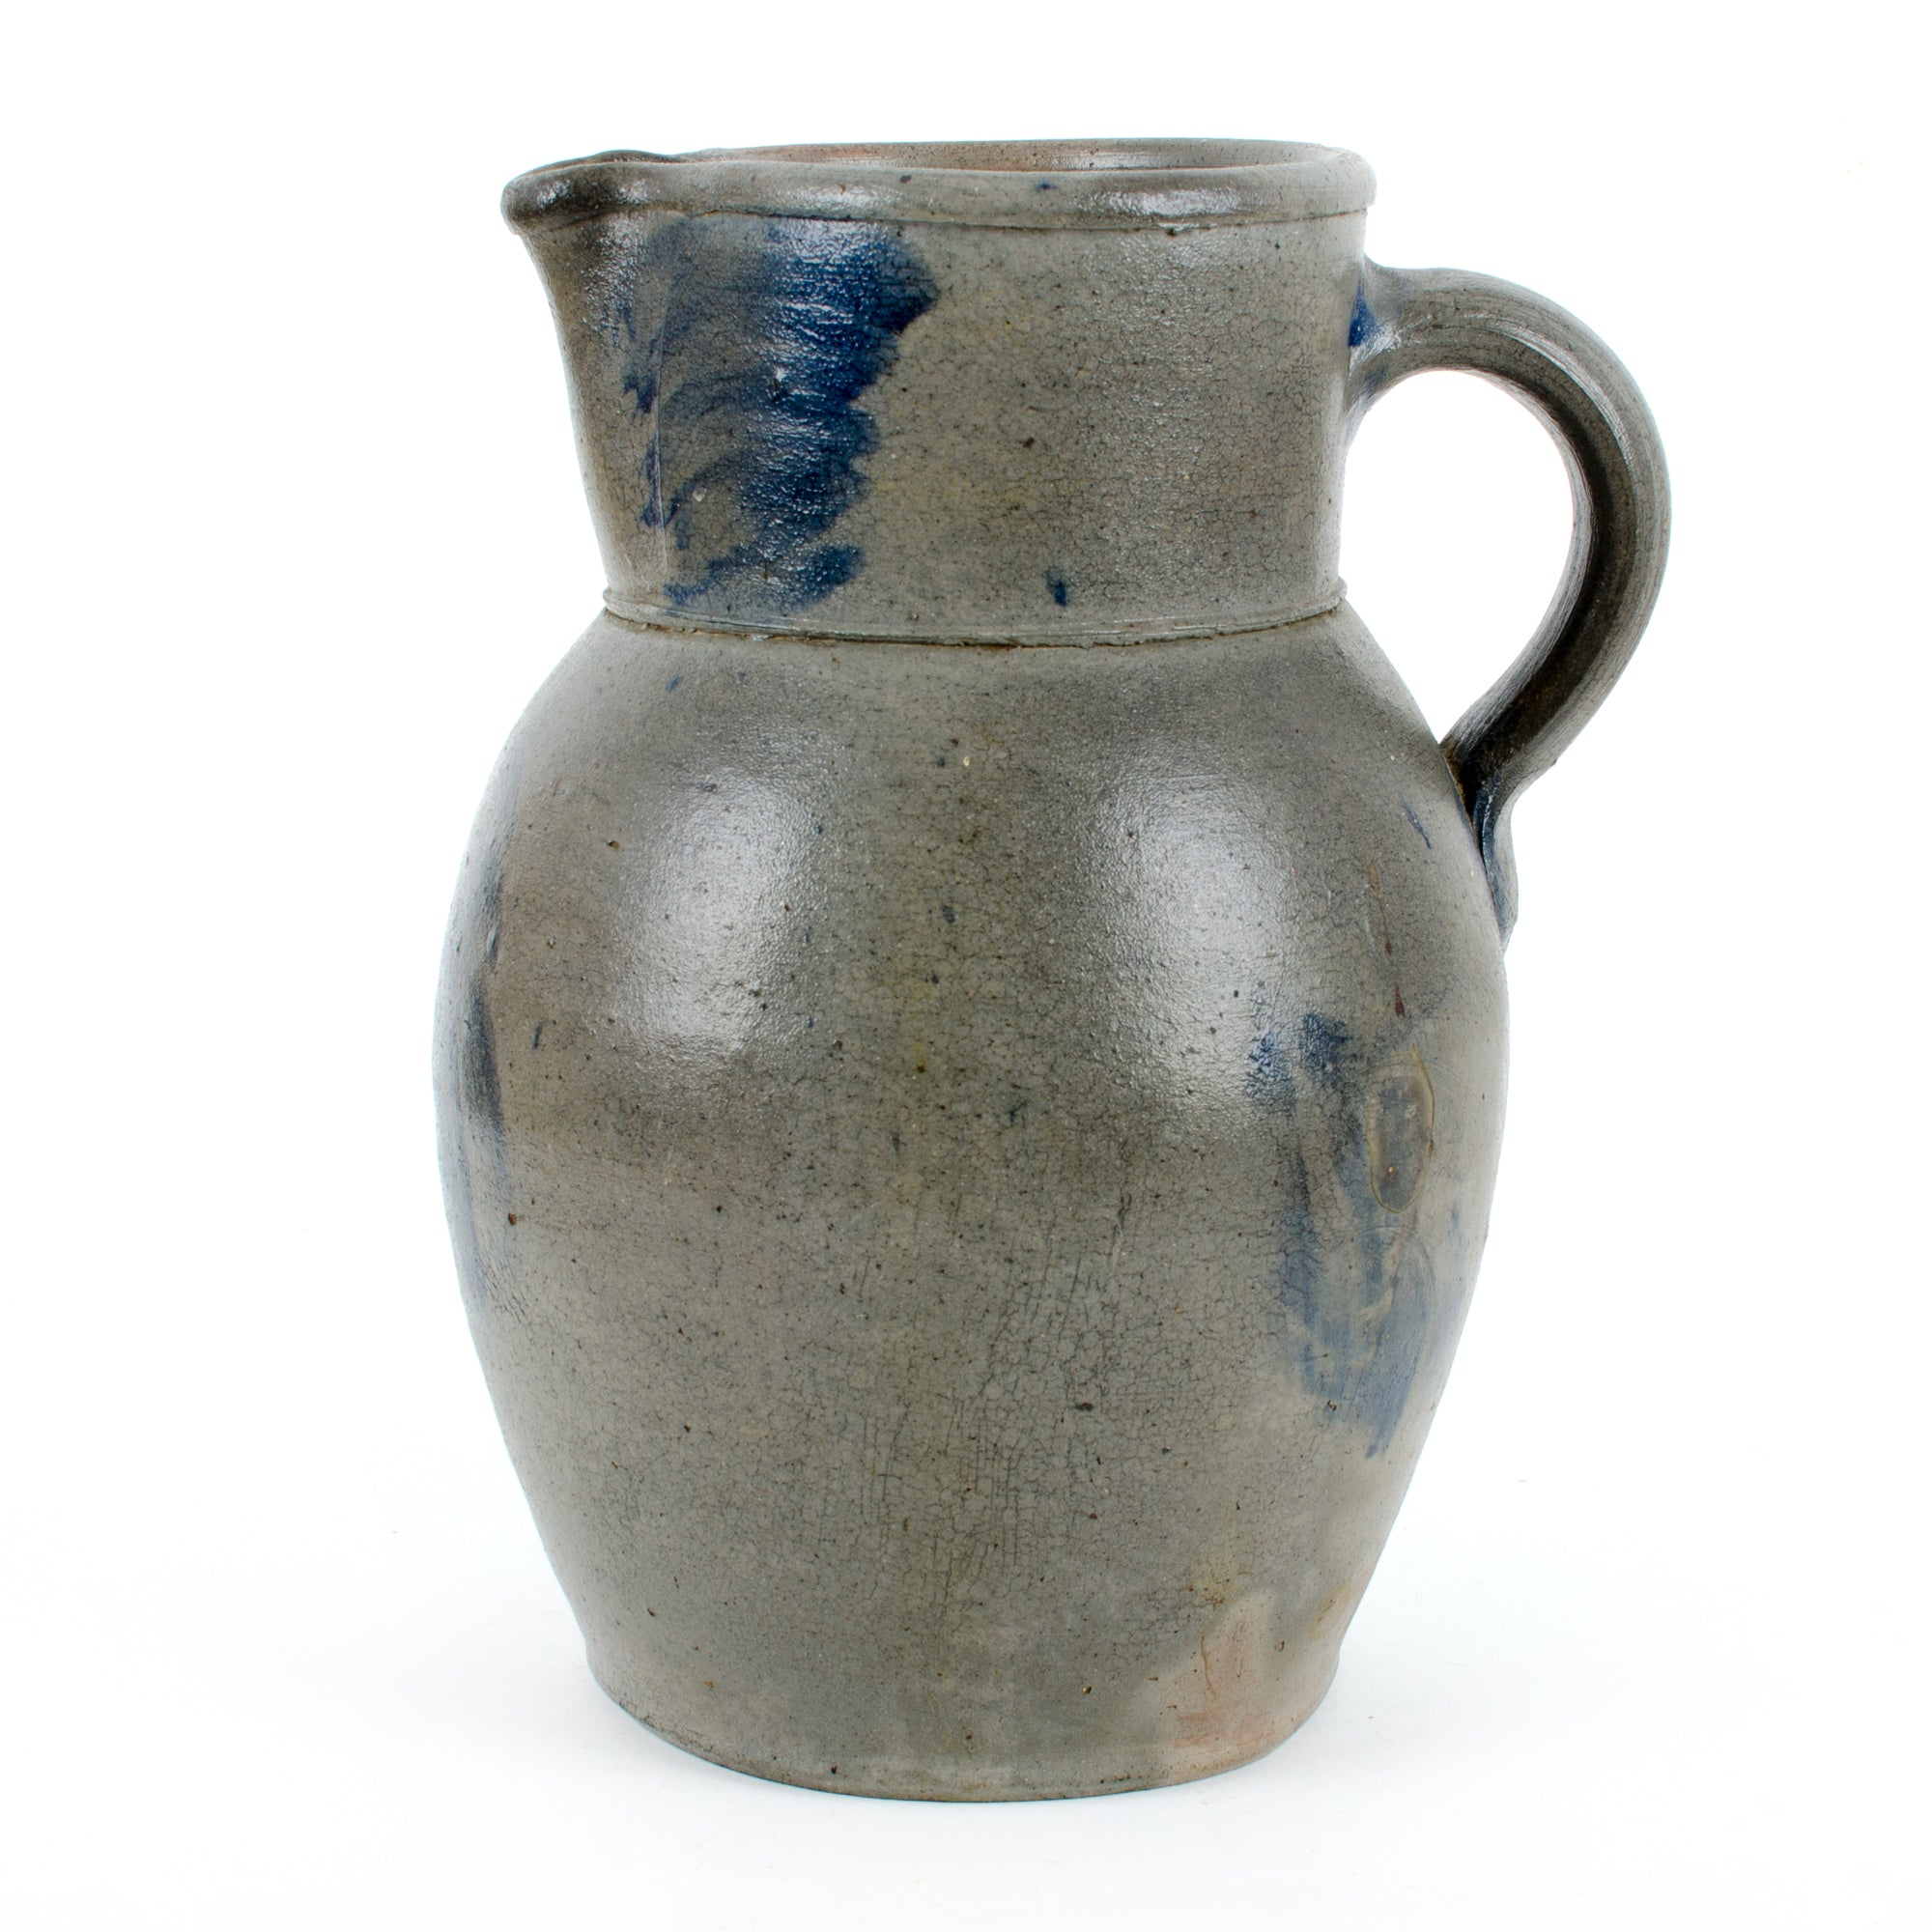 Circa 1870 Baltimore Floral Stoneware Pitcher